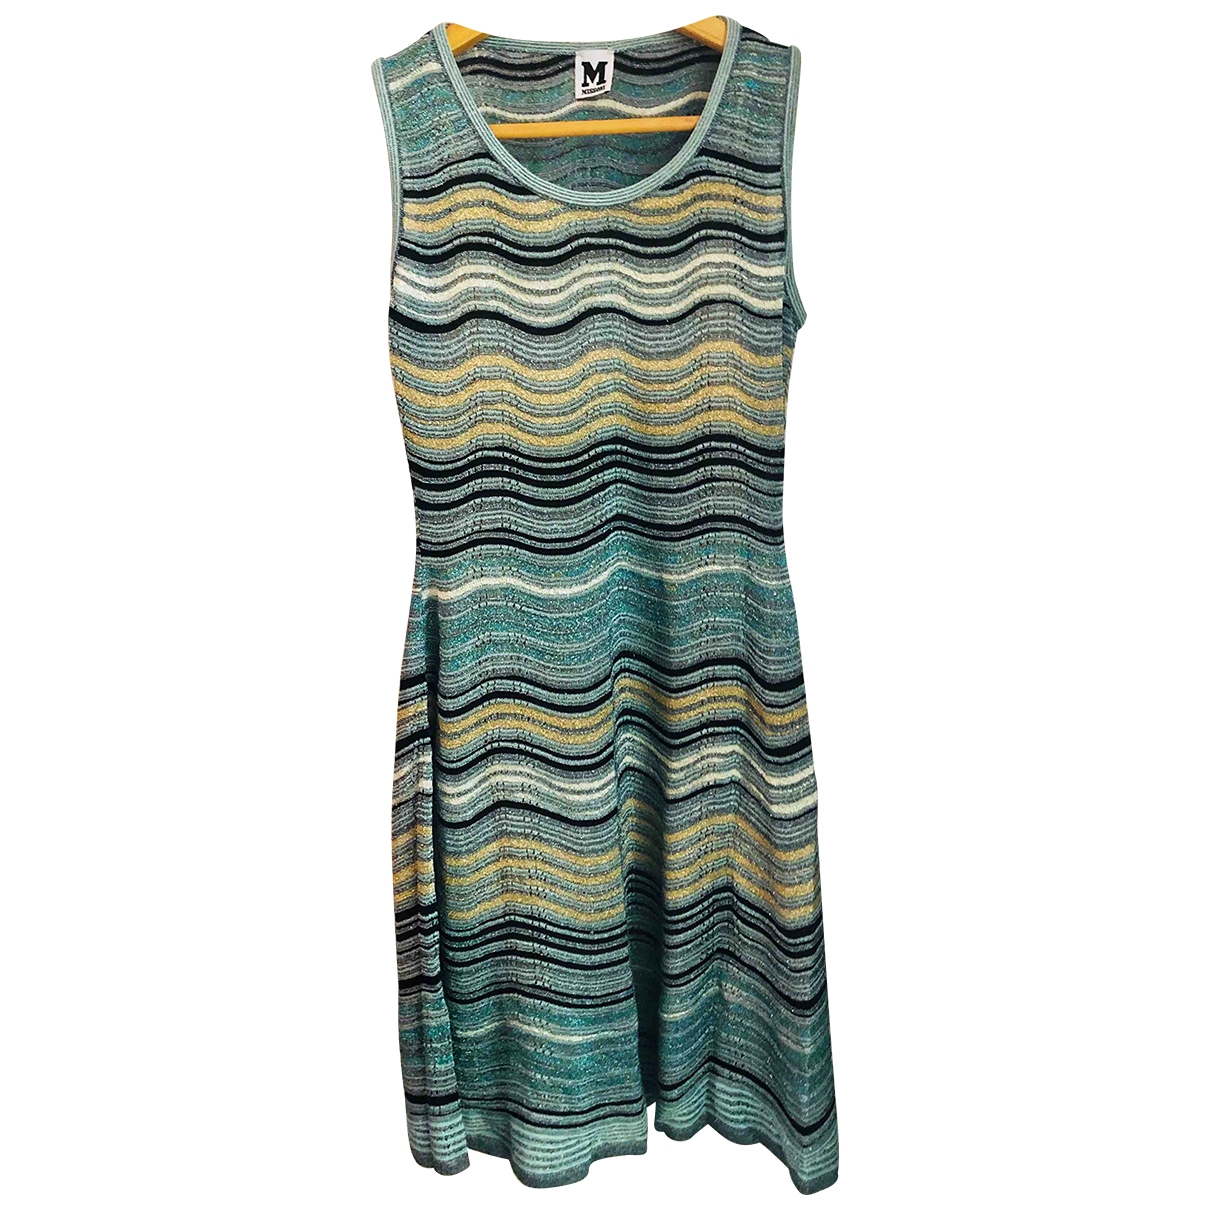 M Missoni \N Multicolour dress for Women 38 IT